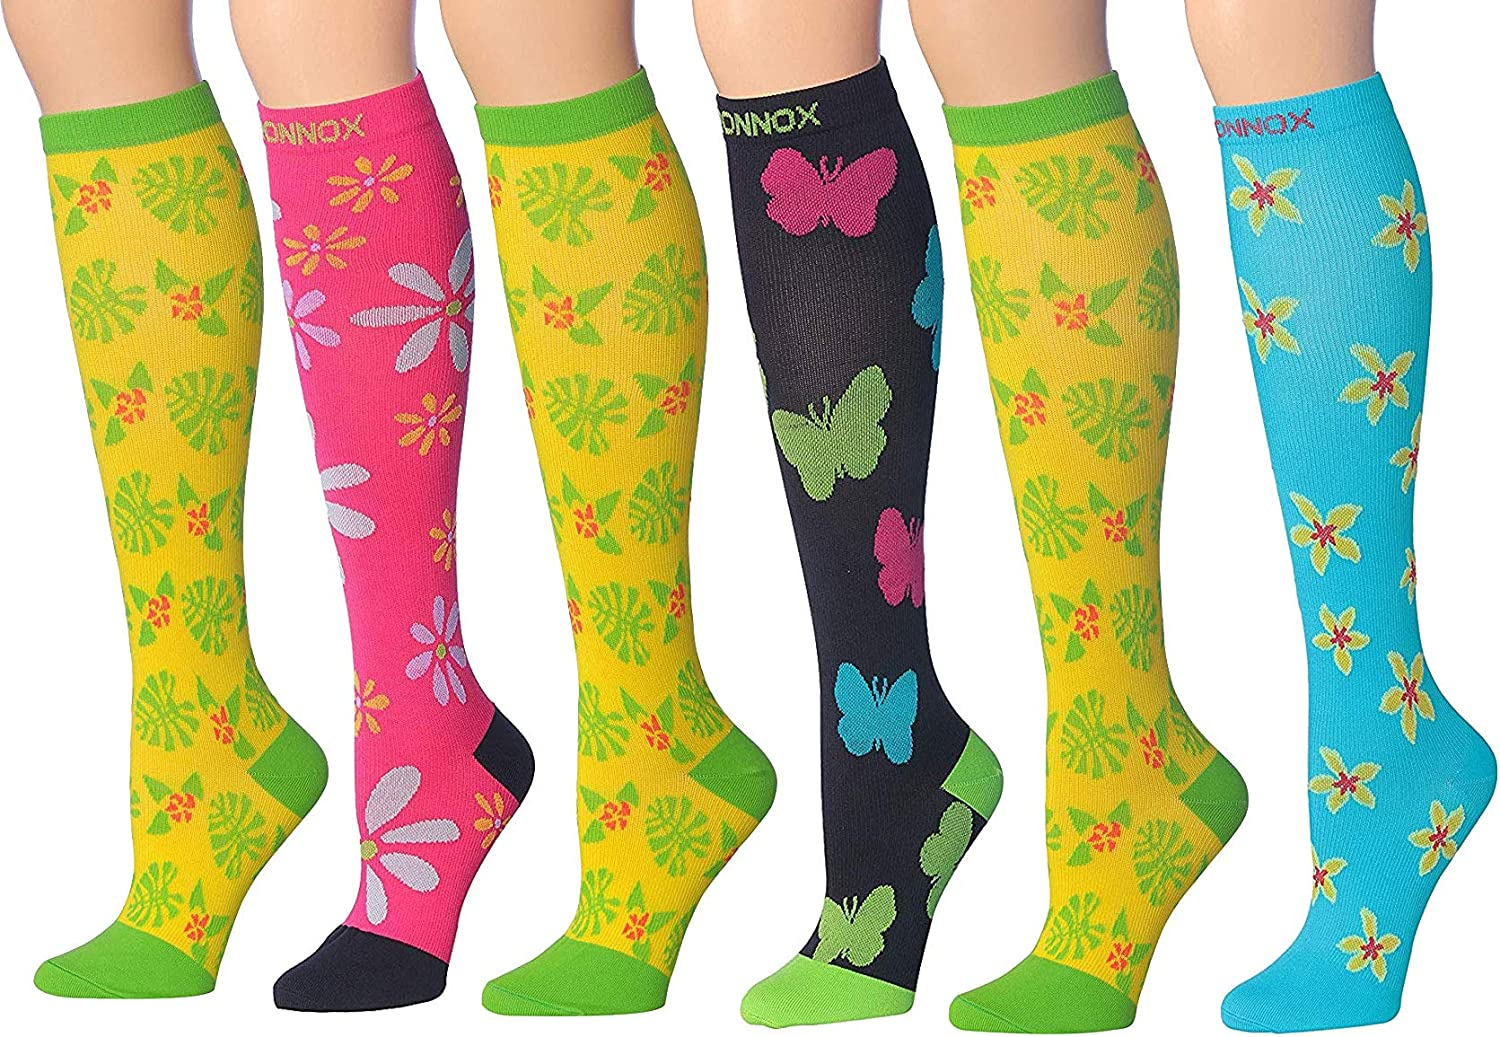 Ronnox Women's 6-Pairs Colorful Patterned Knee High Graduated Compression Socks, (12-14 mmHg)